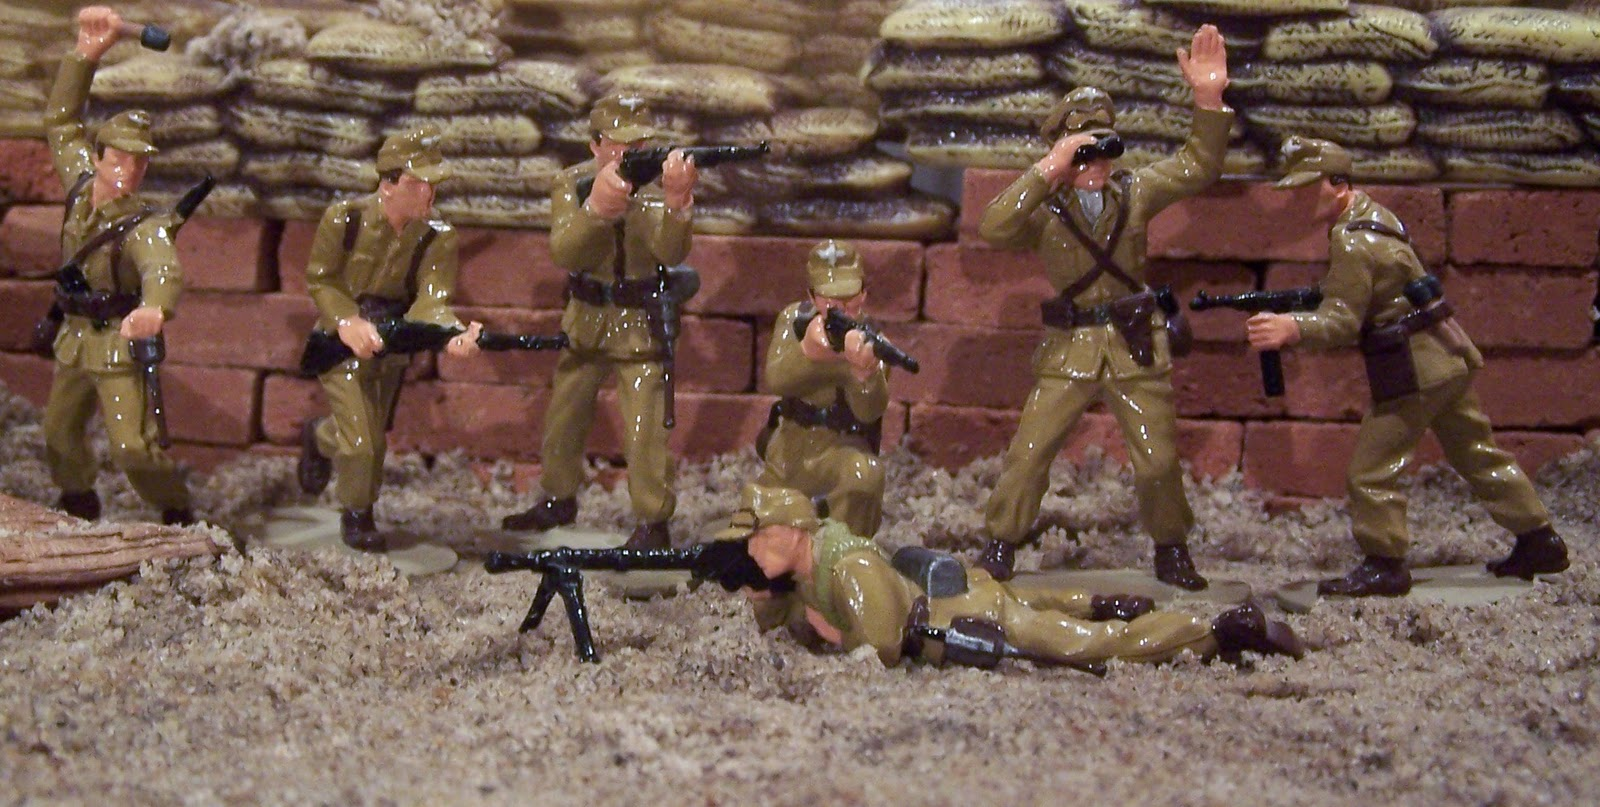 WWII Plastic Toy Soldiers: Introducing the German Africa Corps